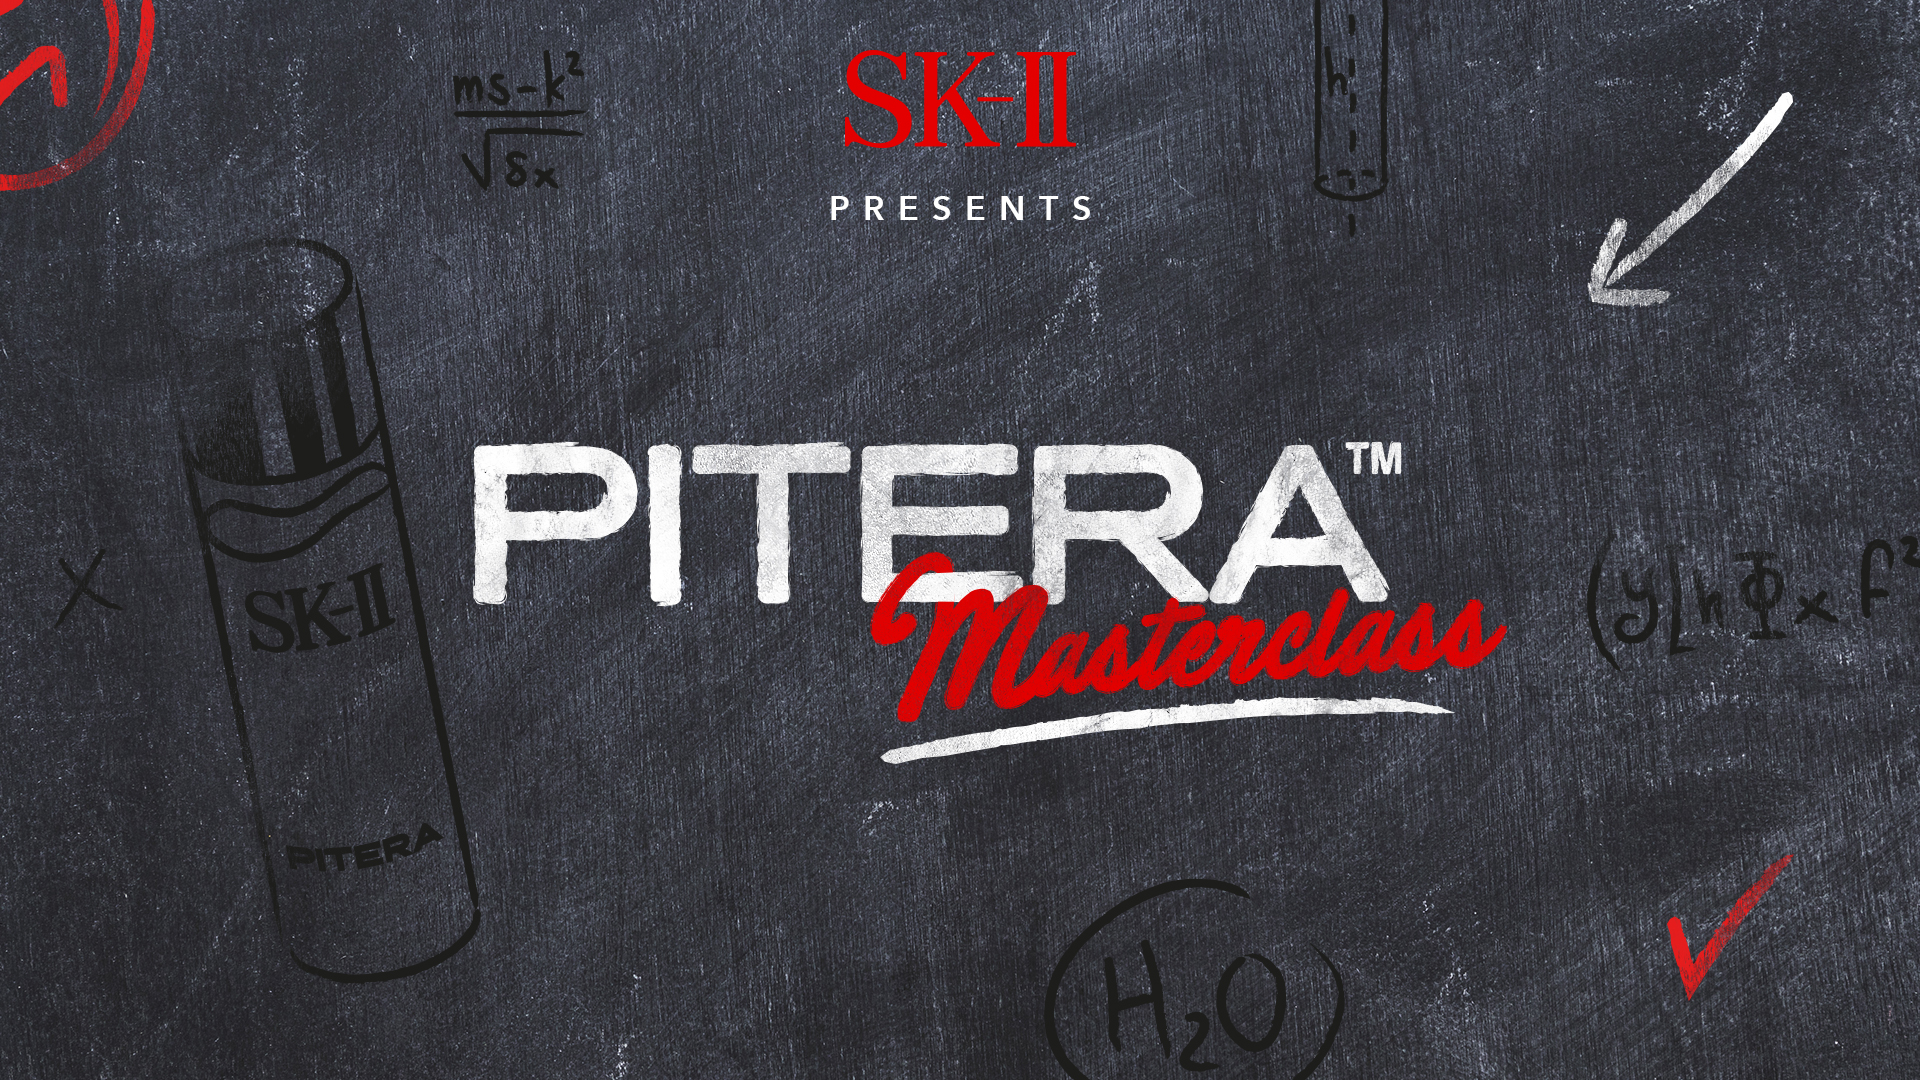 We can't wait to find out what the Pitera Masterclass is all about.